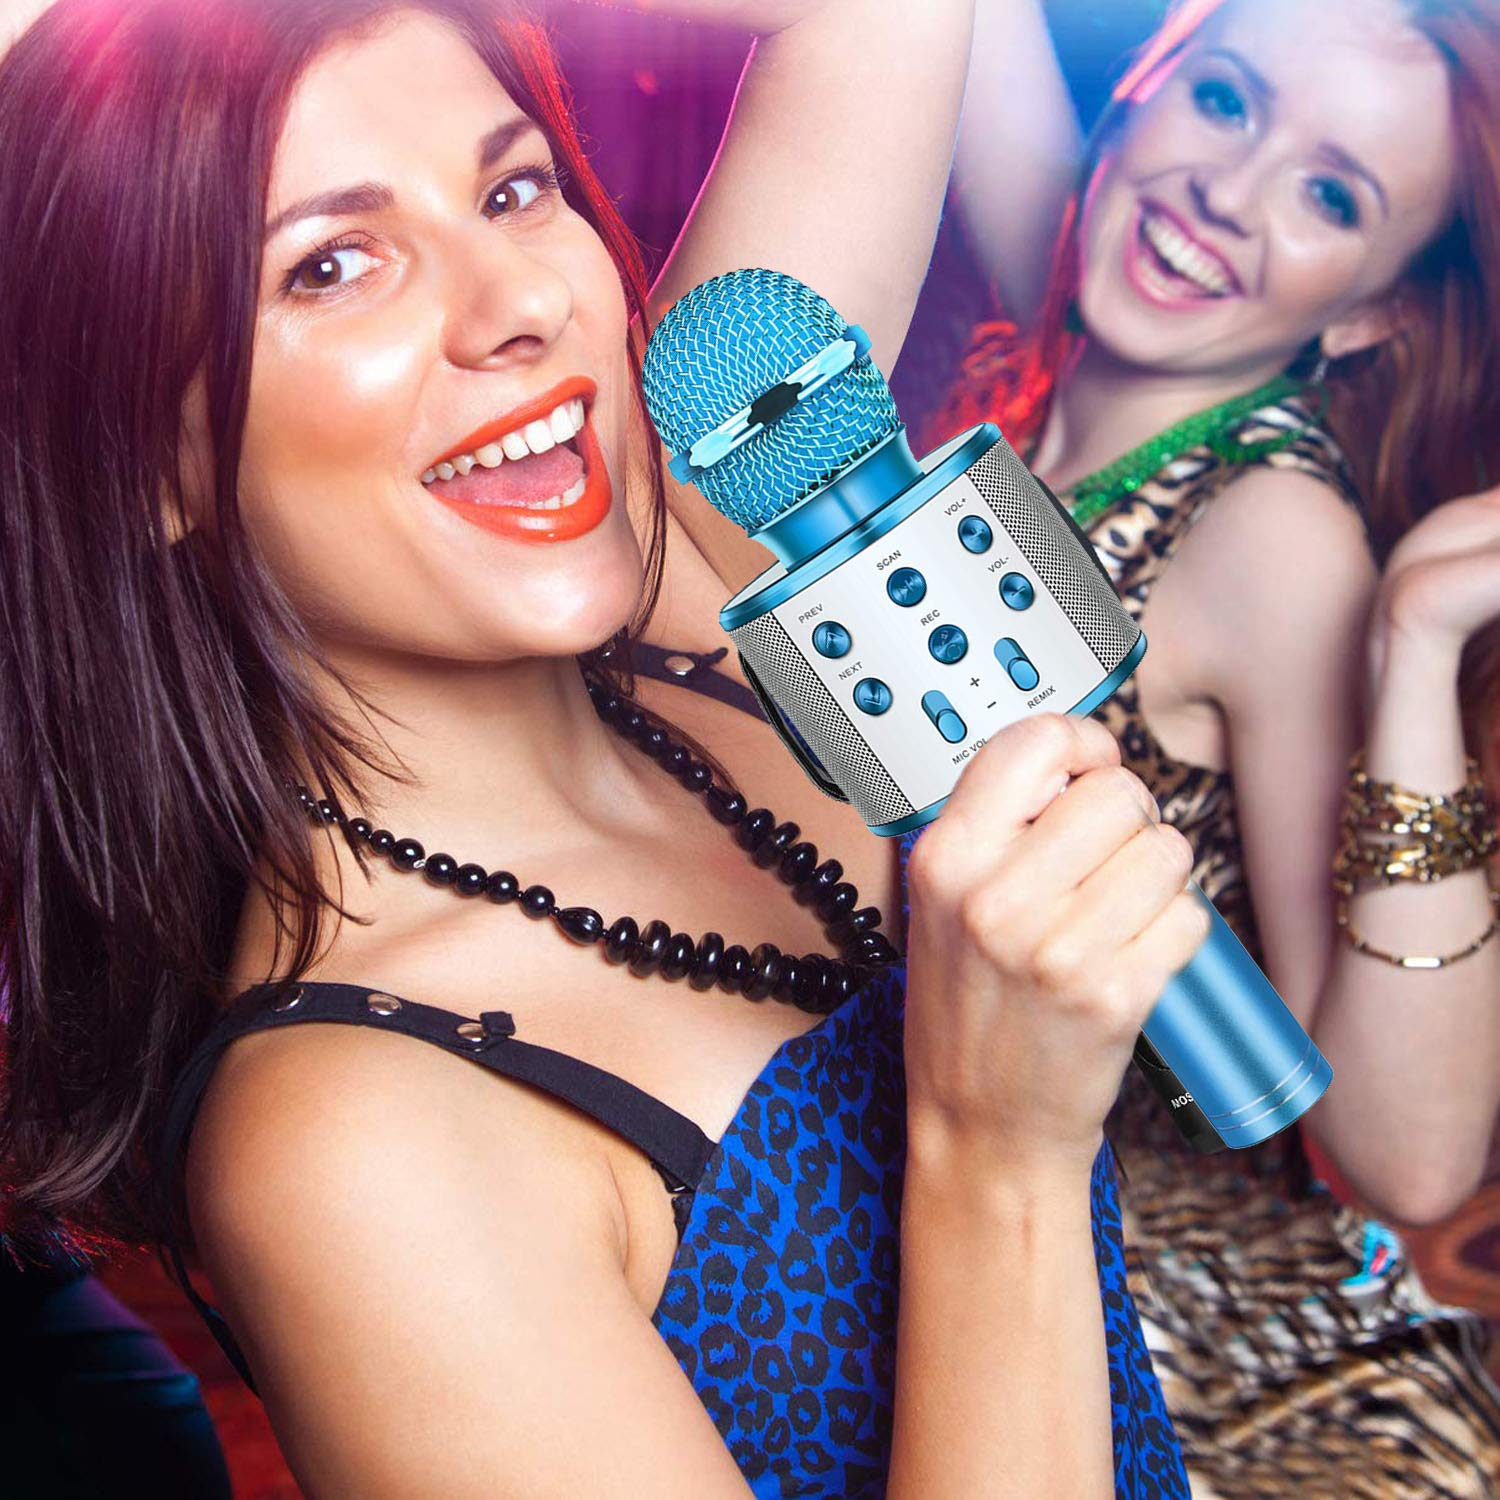 Fun Toys For 4-15 Year Old Girls,Niskite Handheld Karaoke Microphone For Kids Age 7-14,Birthday Gifts for 8 9 10 11 Years Old Boys Girls Blue by Niskite (Image #6)